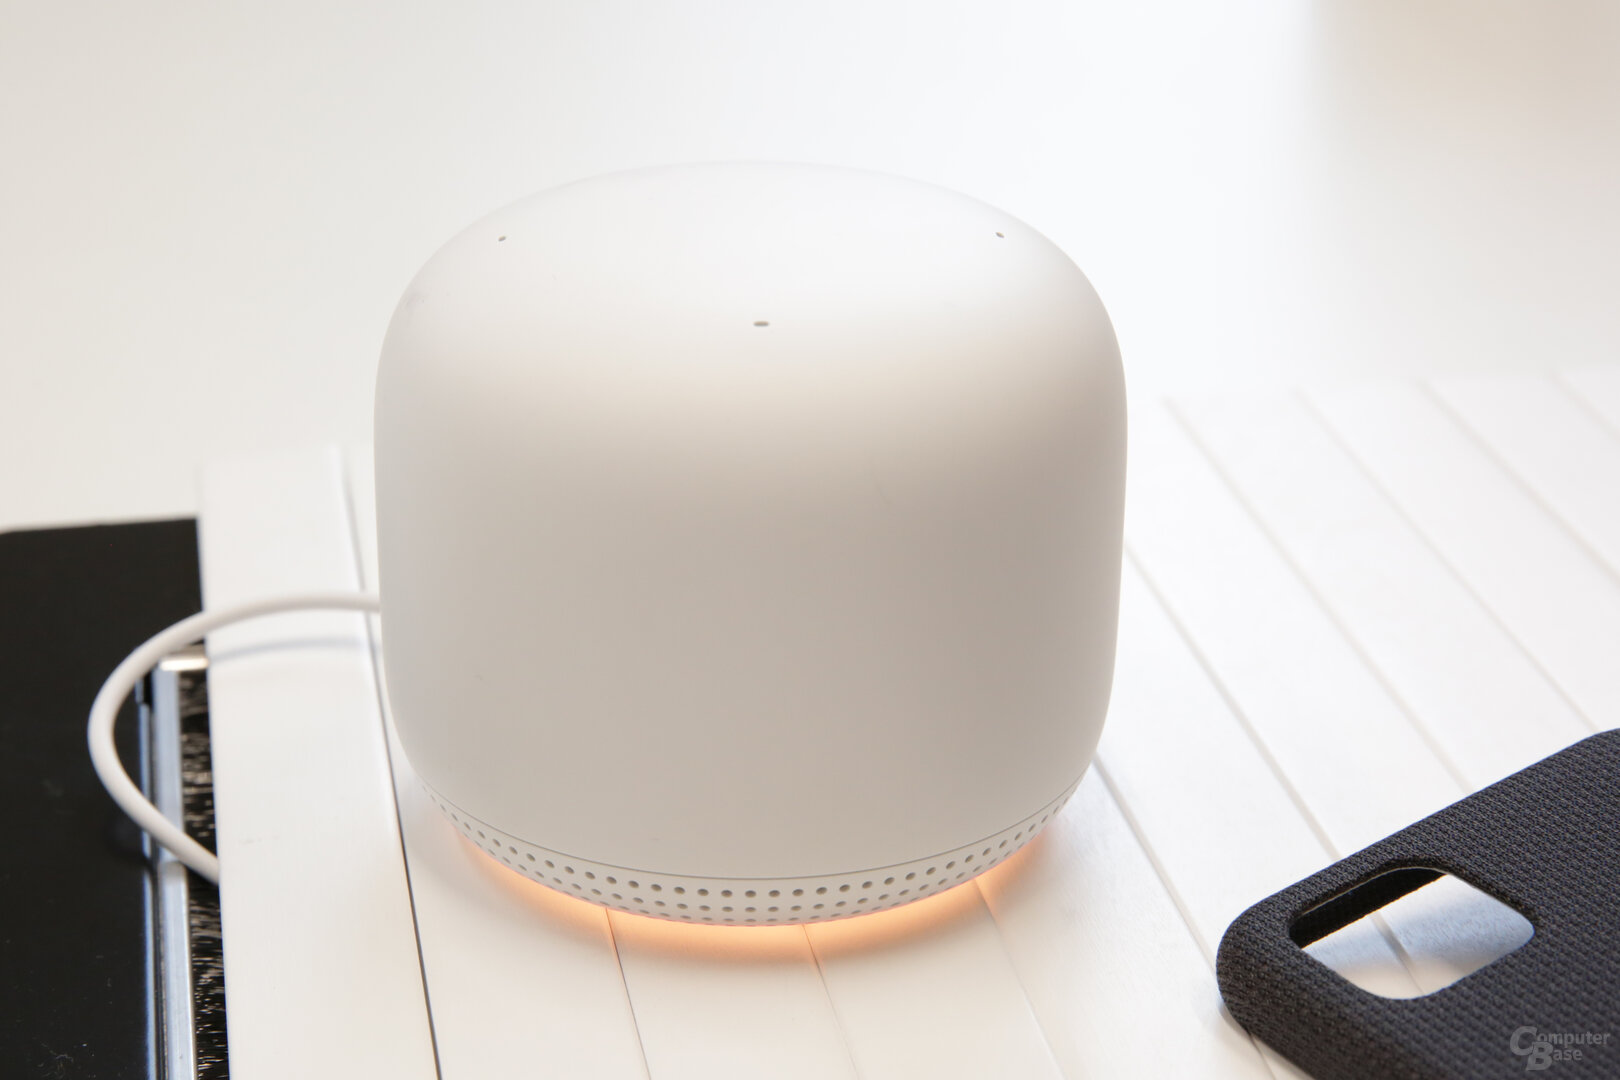 In jedem Access Point steckt ein Nest Mini mit Google Assistant